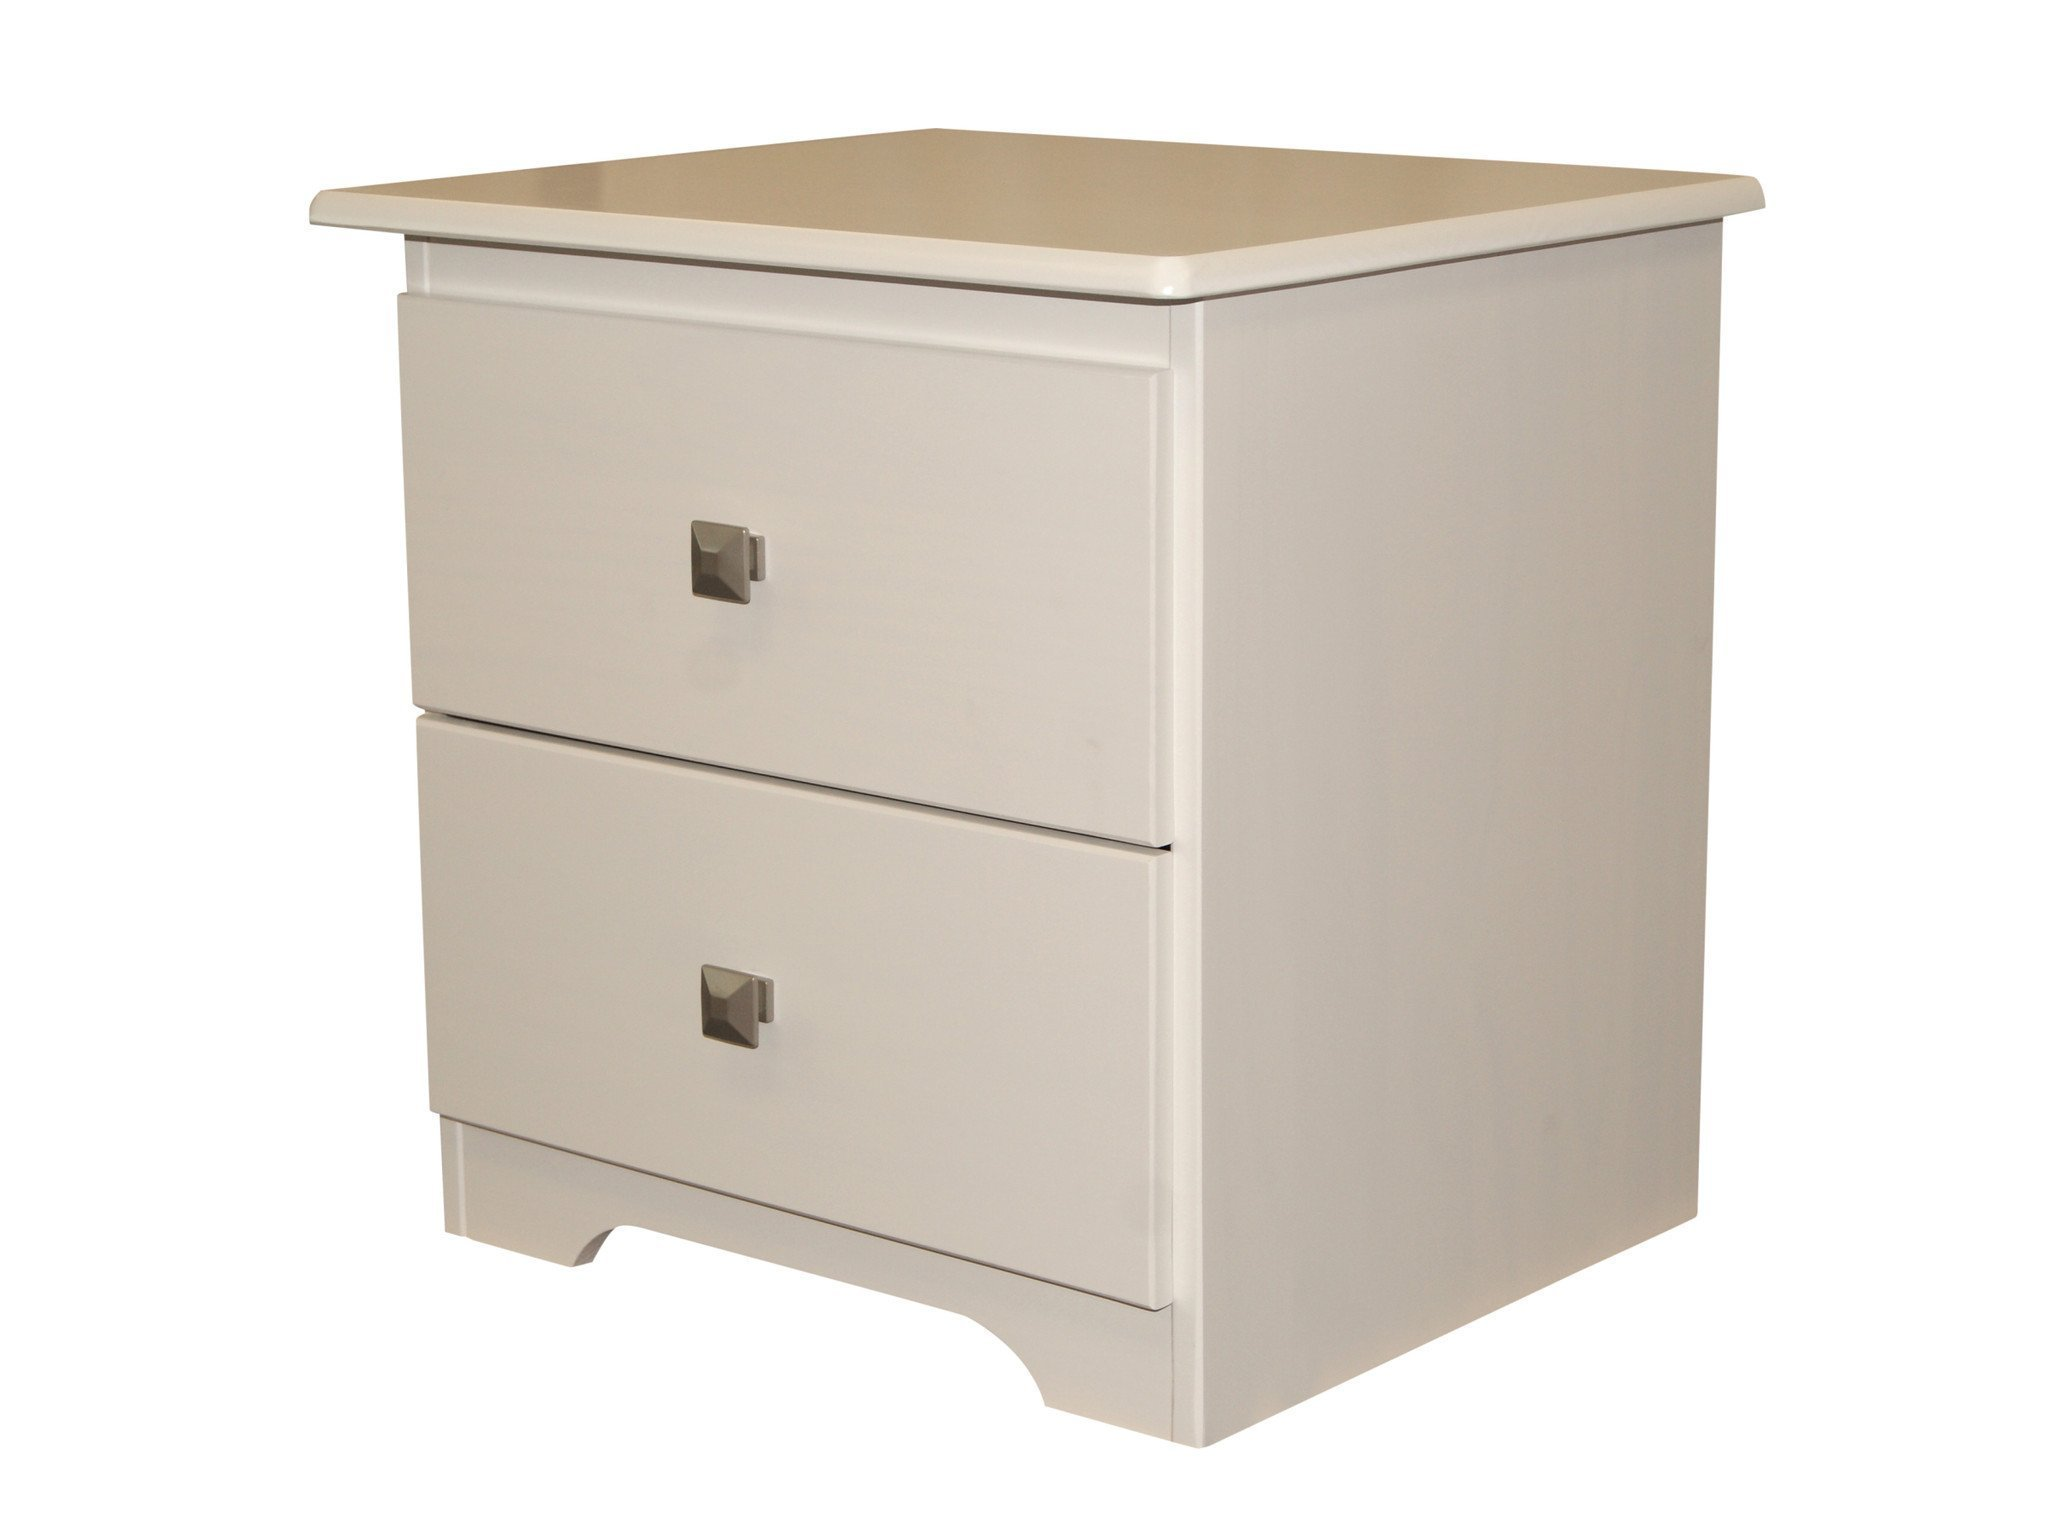 Bedz King 2 Drawer Nightstand, White - 2 Drawer Nightstand Easy glide drawers - 2 pewter color metal pulls Assembly required with included tools - nightstands, bedroom-furniture, bedroom - 71FnT6zfKyL -